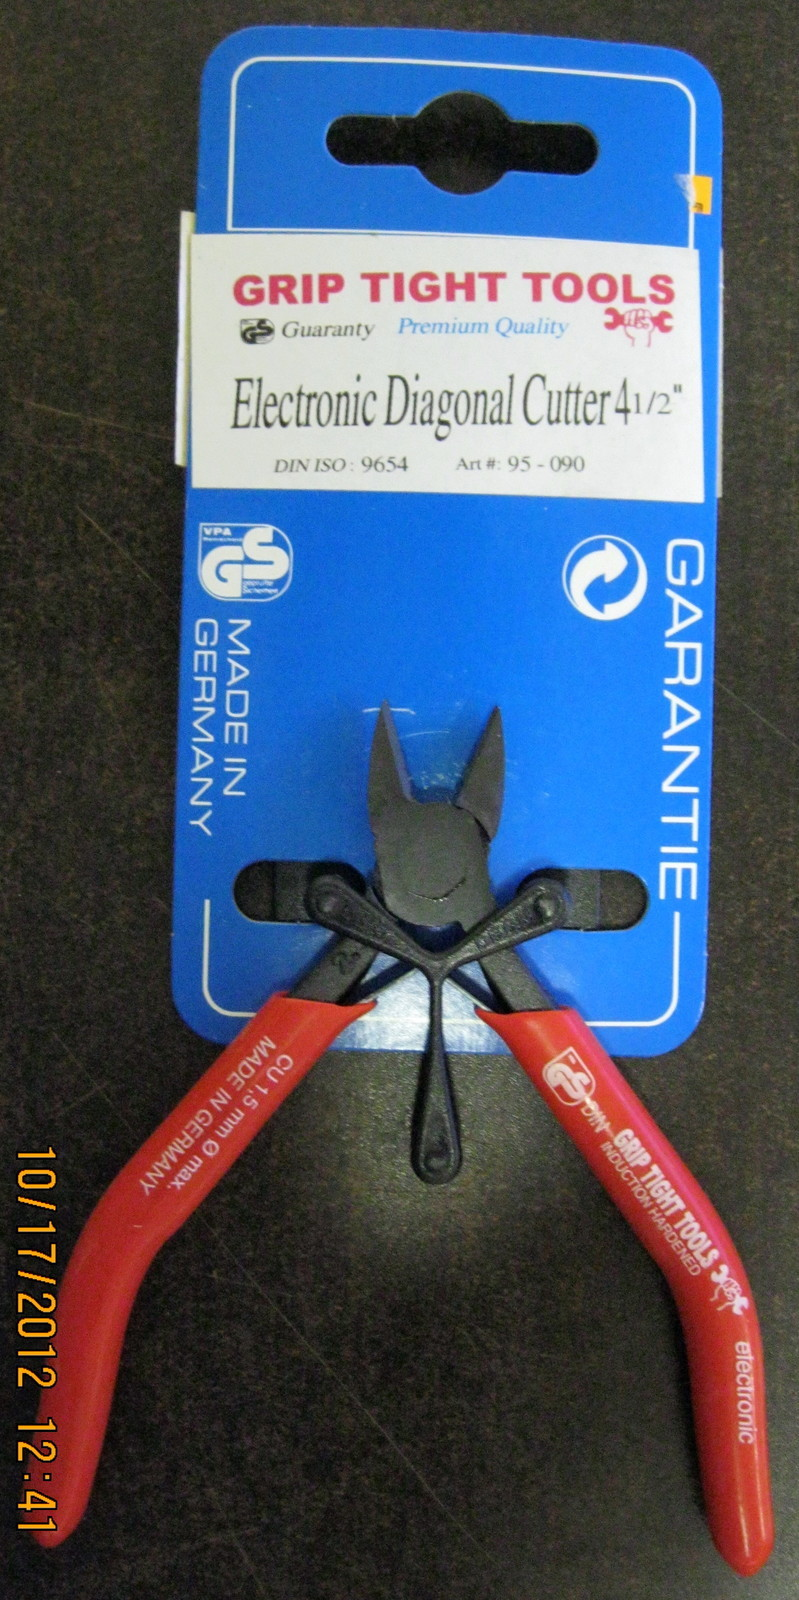 """New Grip Tight Tools 4-1/2"""" Electronic Diagonal Cutter #95-090"""